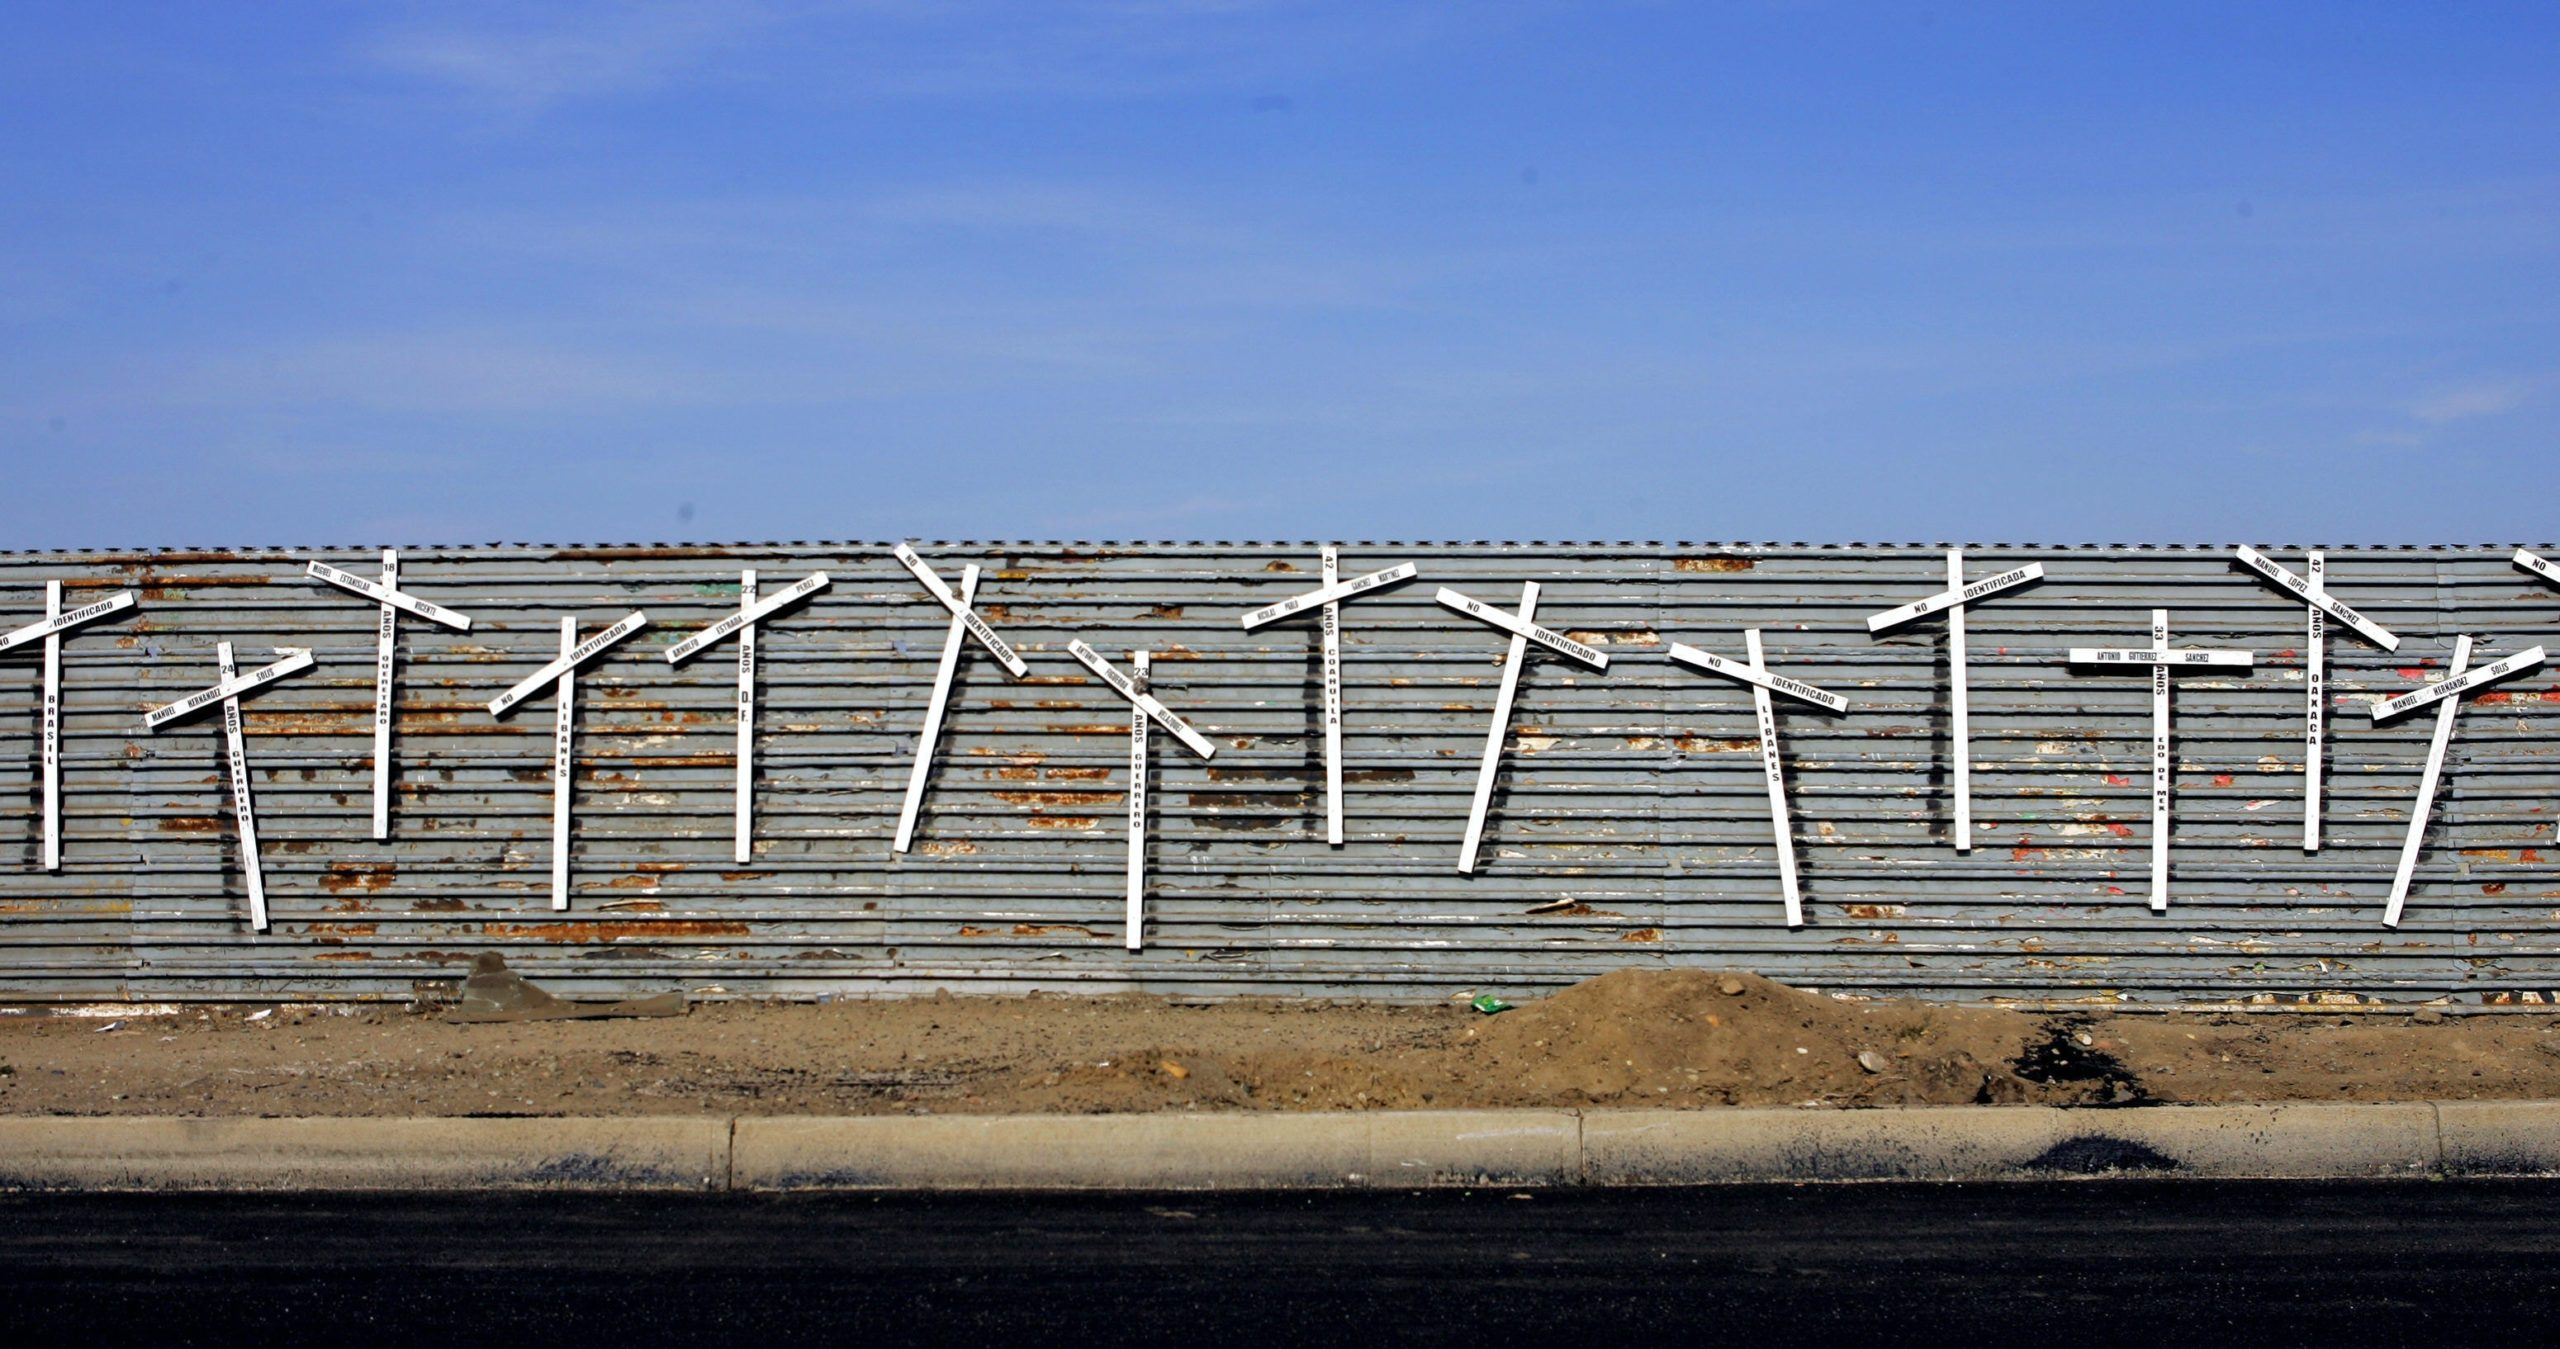 Crosses are posted on the wall that separates the US and Mexico 29 January 2006 in Tijuana, Mexico. According to the US Border Patrol, some 2,000 immigrants have died crossing into the US in the period 1998-2004 as operation Gatekeeper was being developped as a way to secure the border. To avoid such a perilous journey Mexico's National Human Rights commission announced a plan to distribute maps showing safe routes into the US, a move that created indignation by anti-immigrant groups and conservative politicians in the US. Because of this response Mexican officials have declined to implement the plan.  AFP PHOTO/Omar TORRES / AFP / OMAR TORRES        (Photo credit should read OMAR TORRES/AFP via Getty Images)